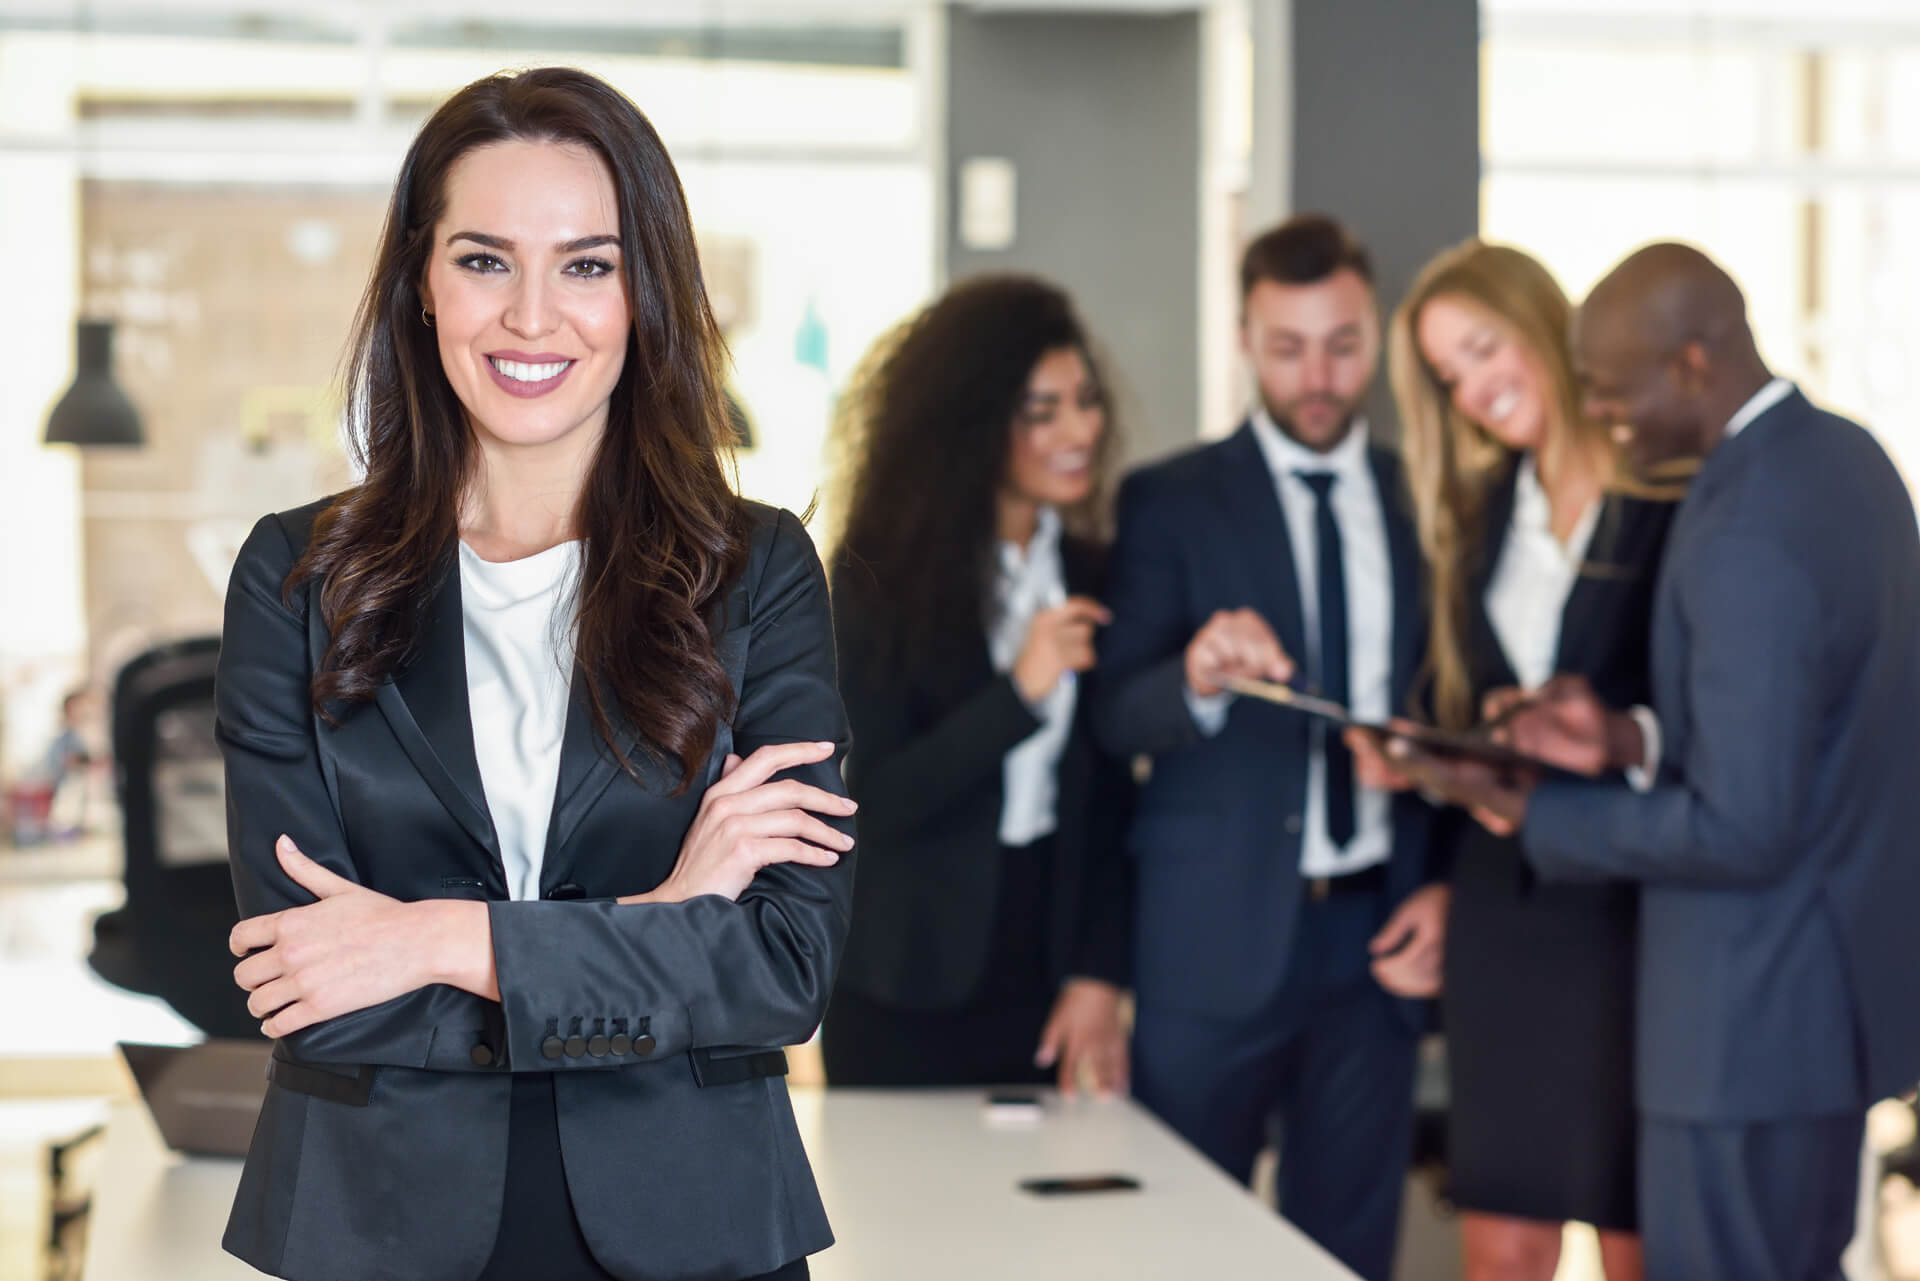 businesswoman-leader-modern-office-with-businesspeople-workin